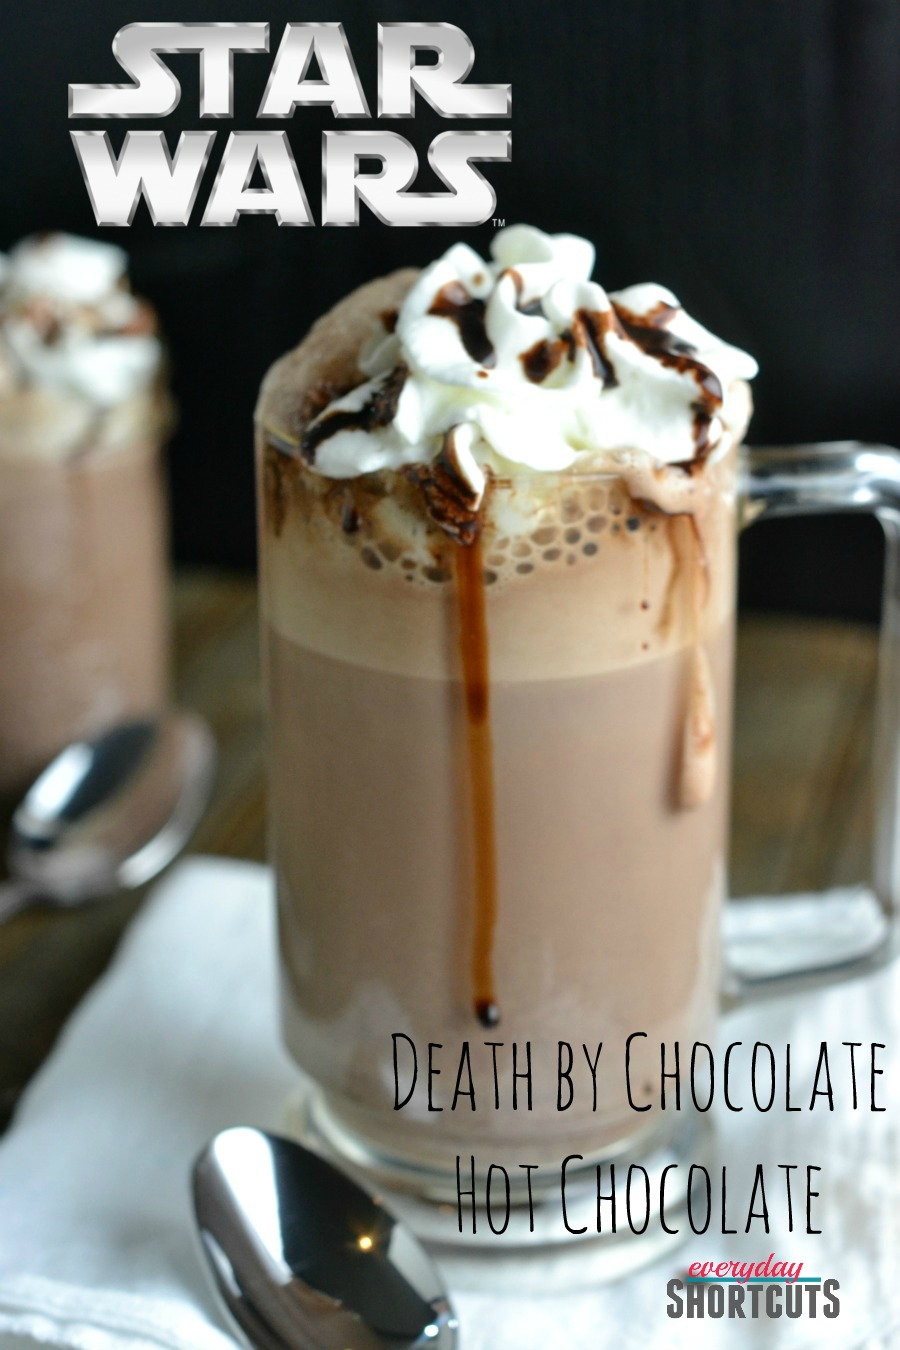 Death by Chocolate Starwars Hot Chocolate